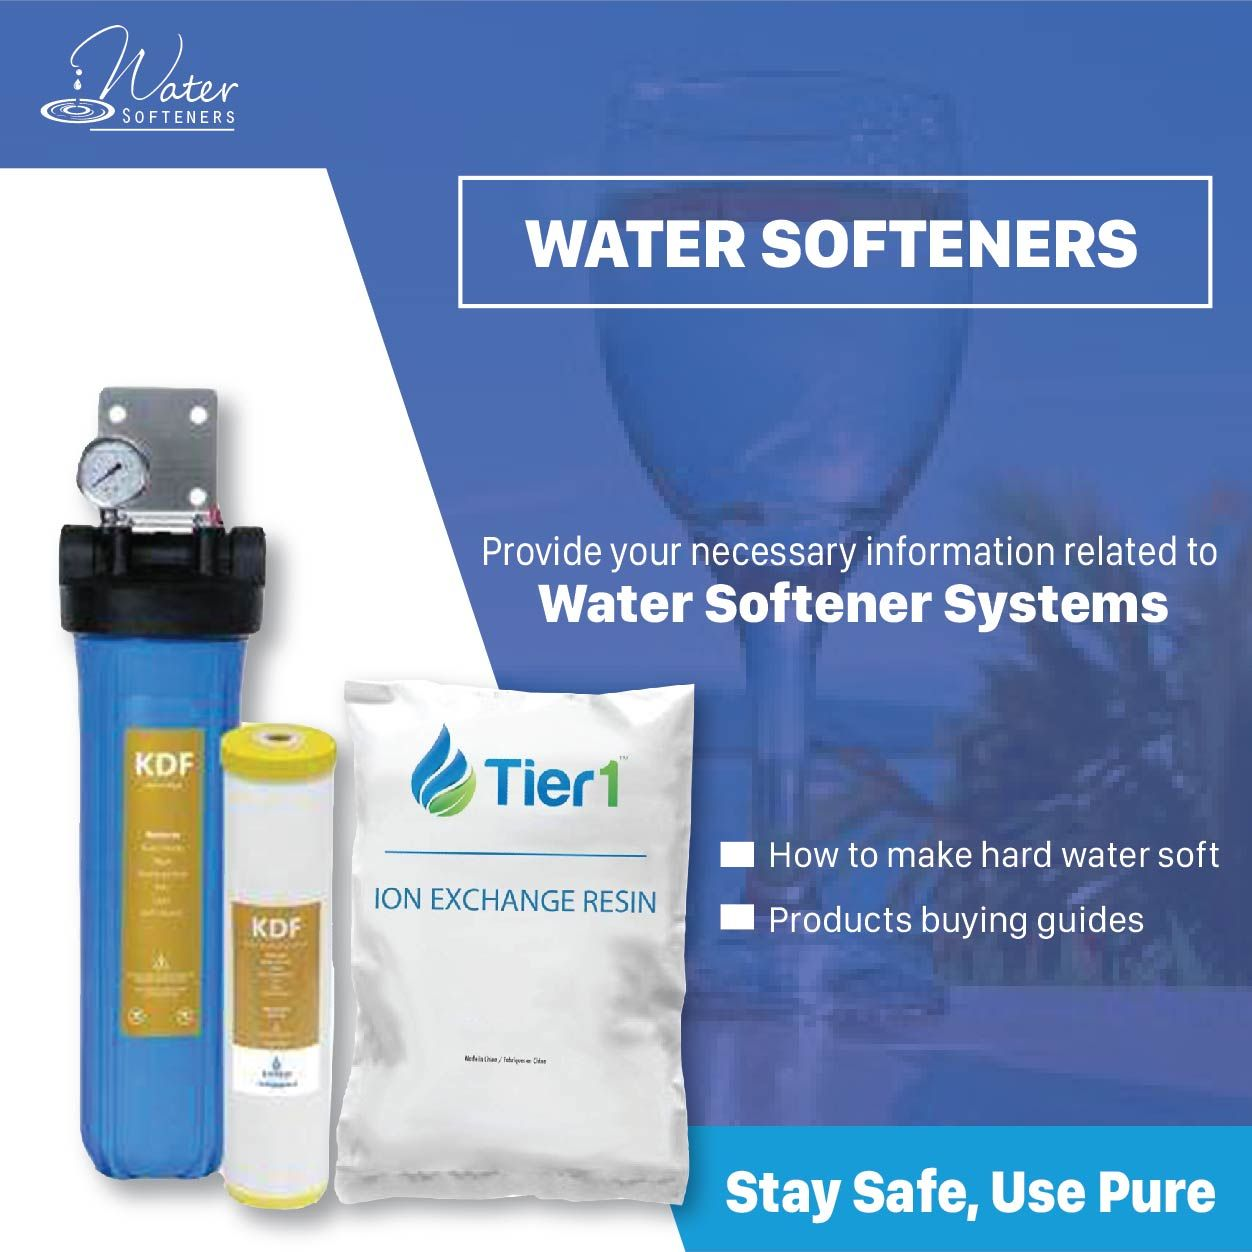 Water Softeners In 2020 Water Softener Water Softener System Softener